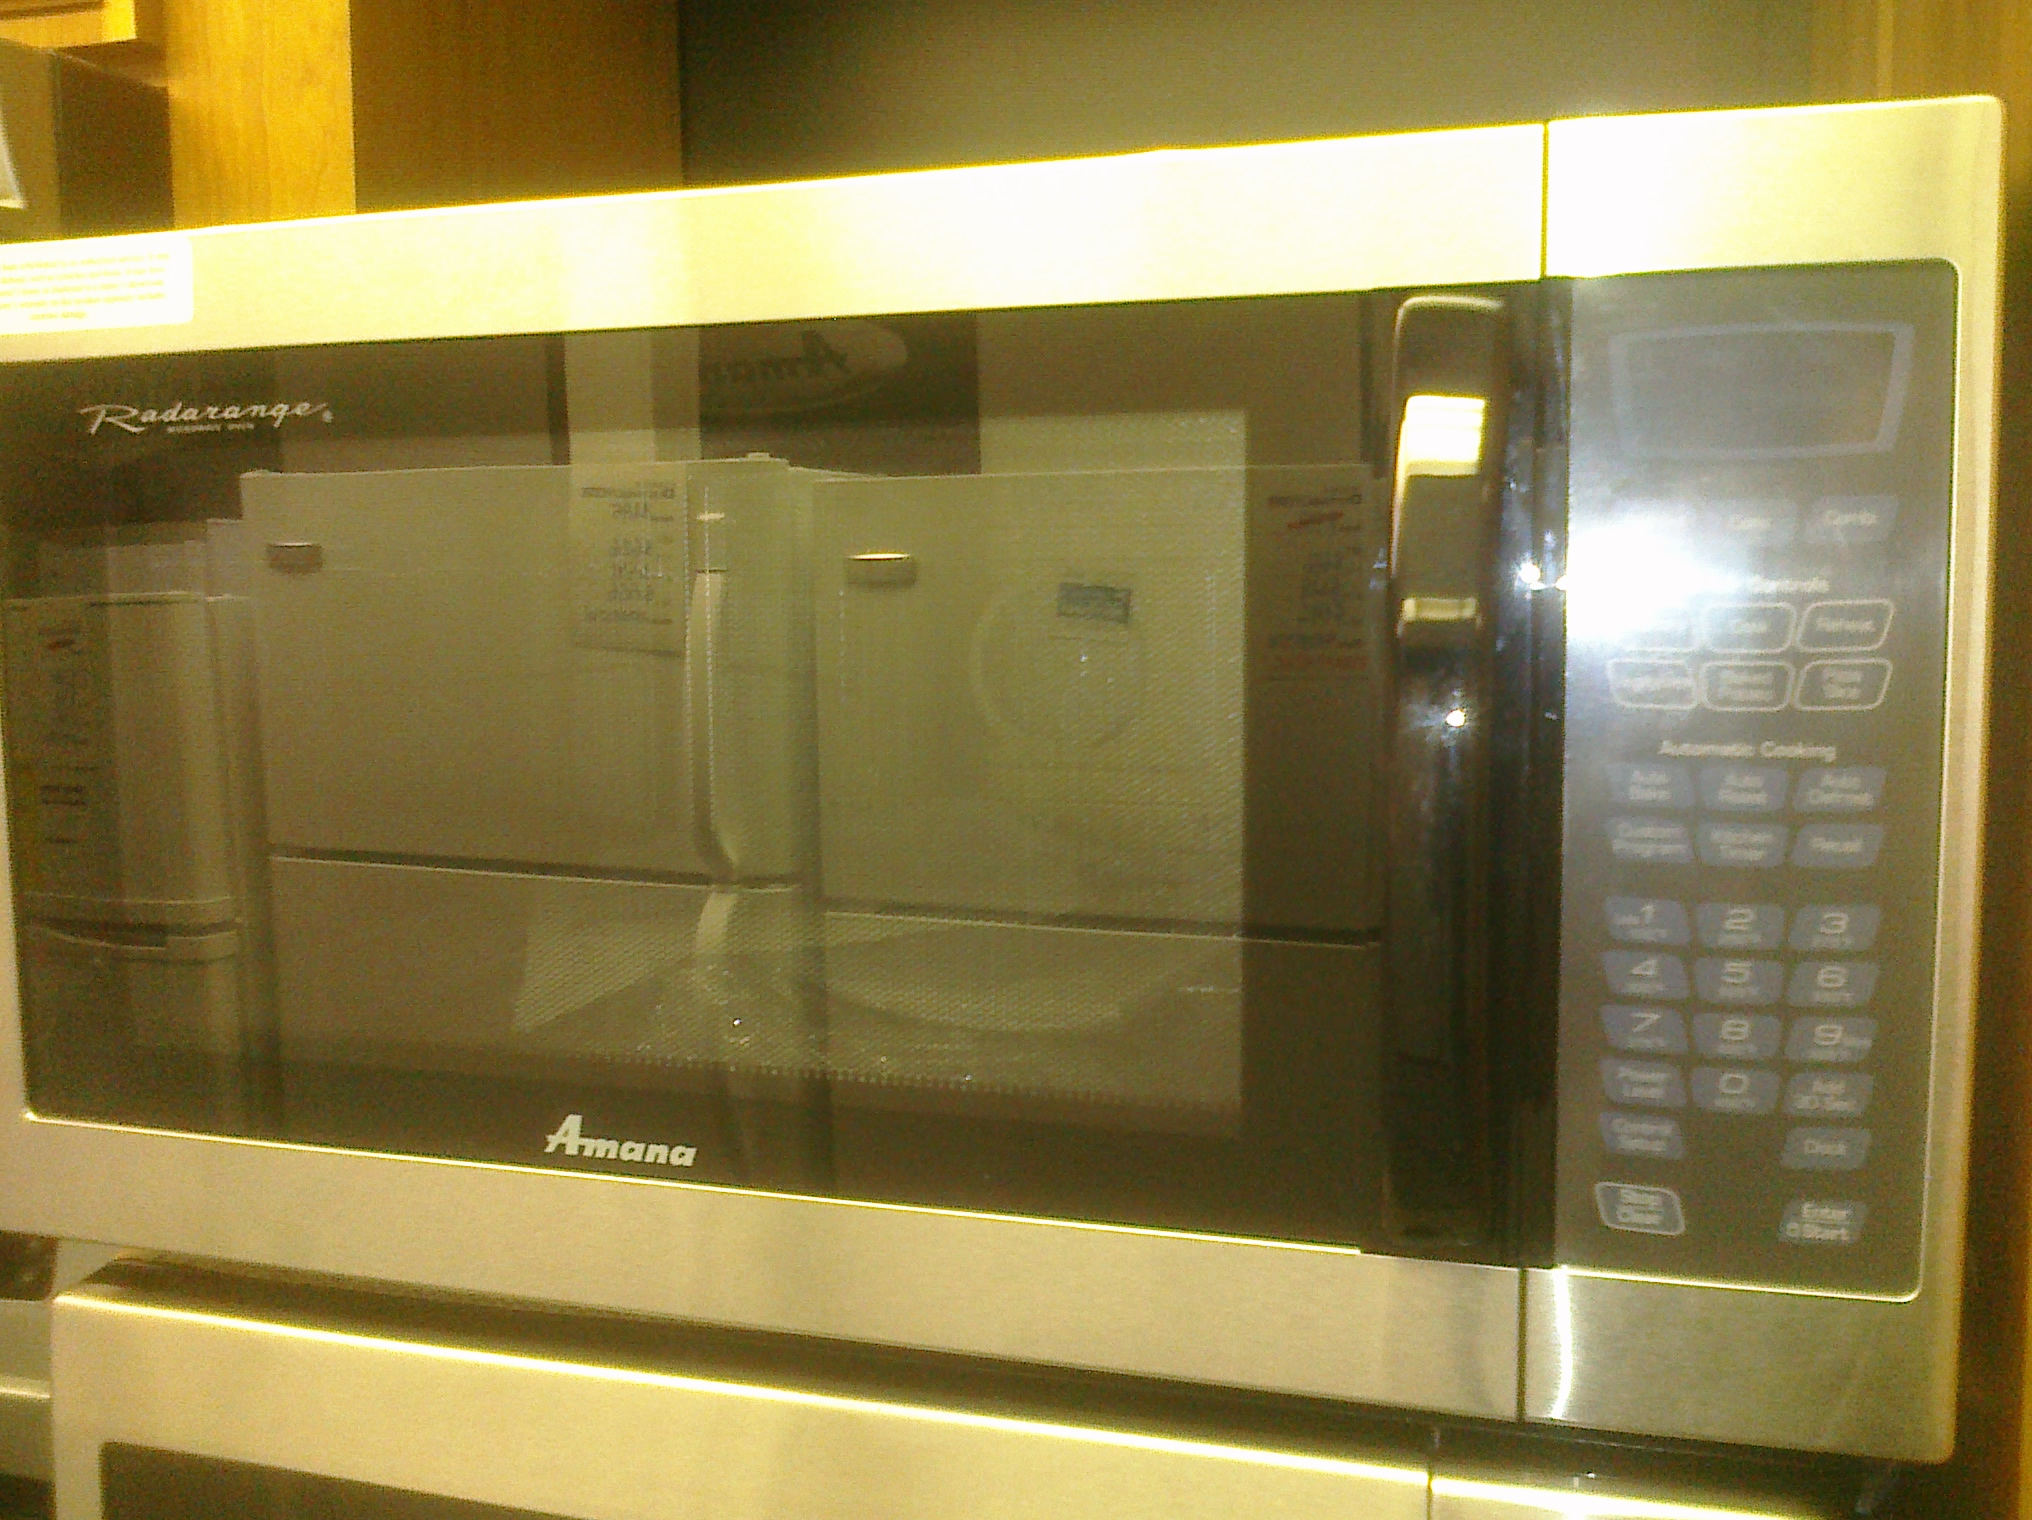 (9) Amana AMC6158BAS 1.5CuFt Countertop Convection Microwave Oven, Stainless Steel